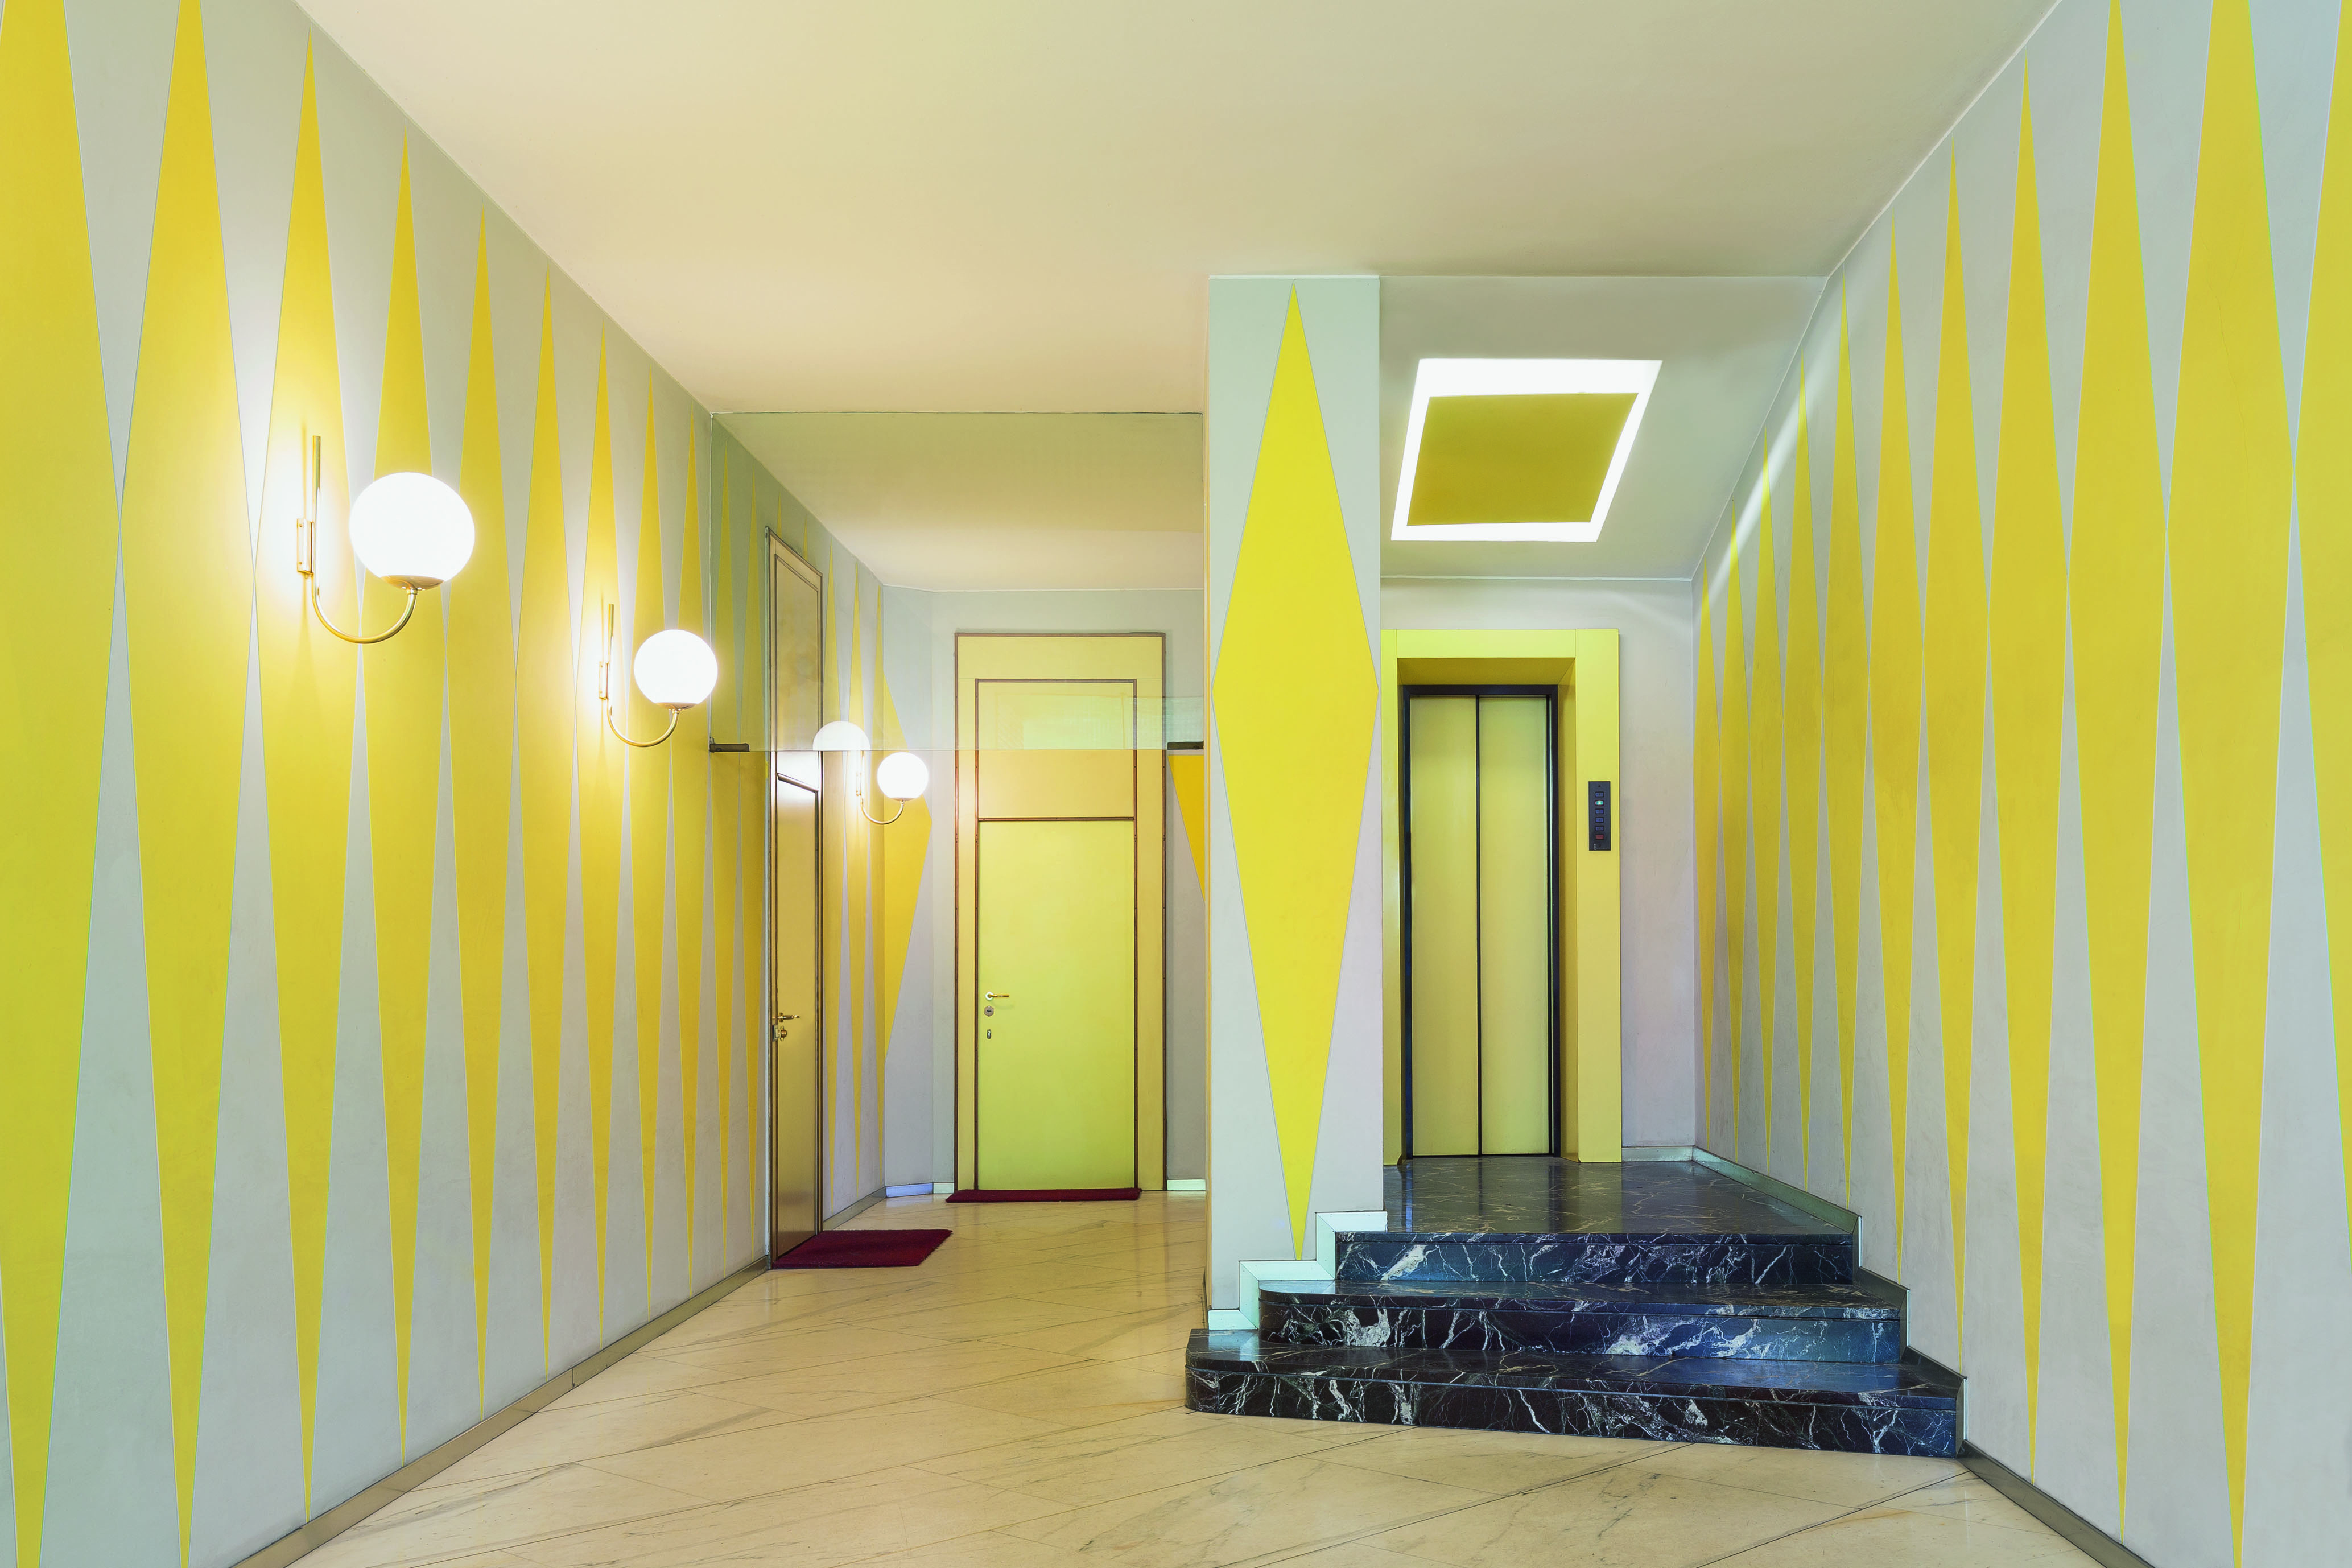 Curbed Archives - Interior Design - Page 2